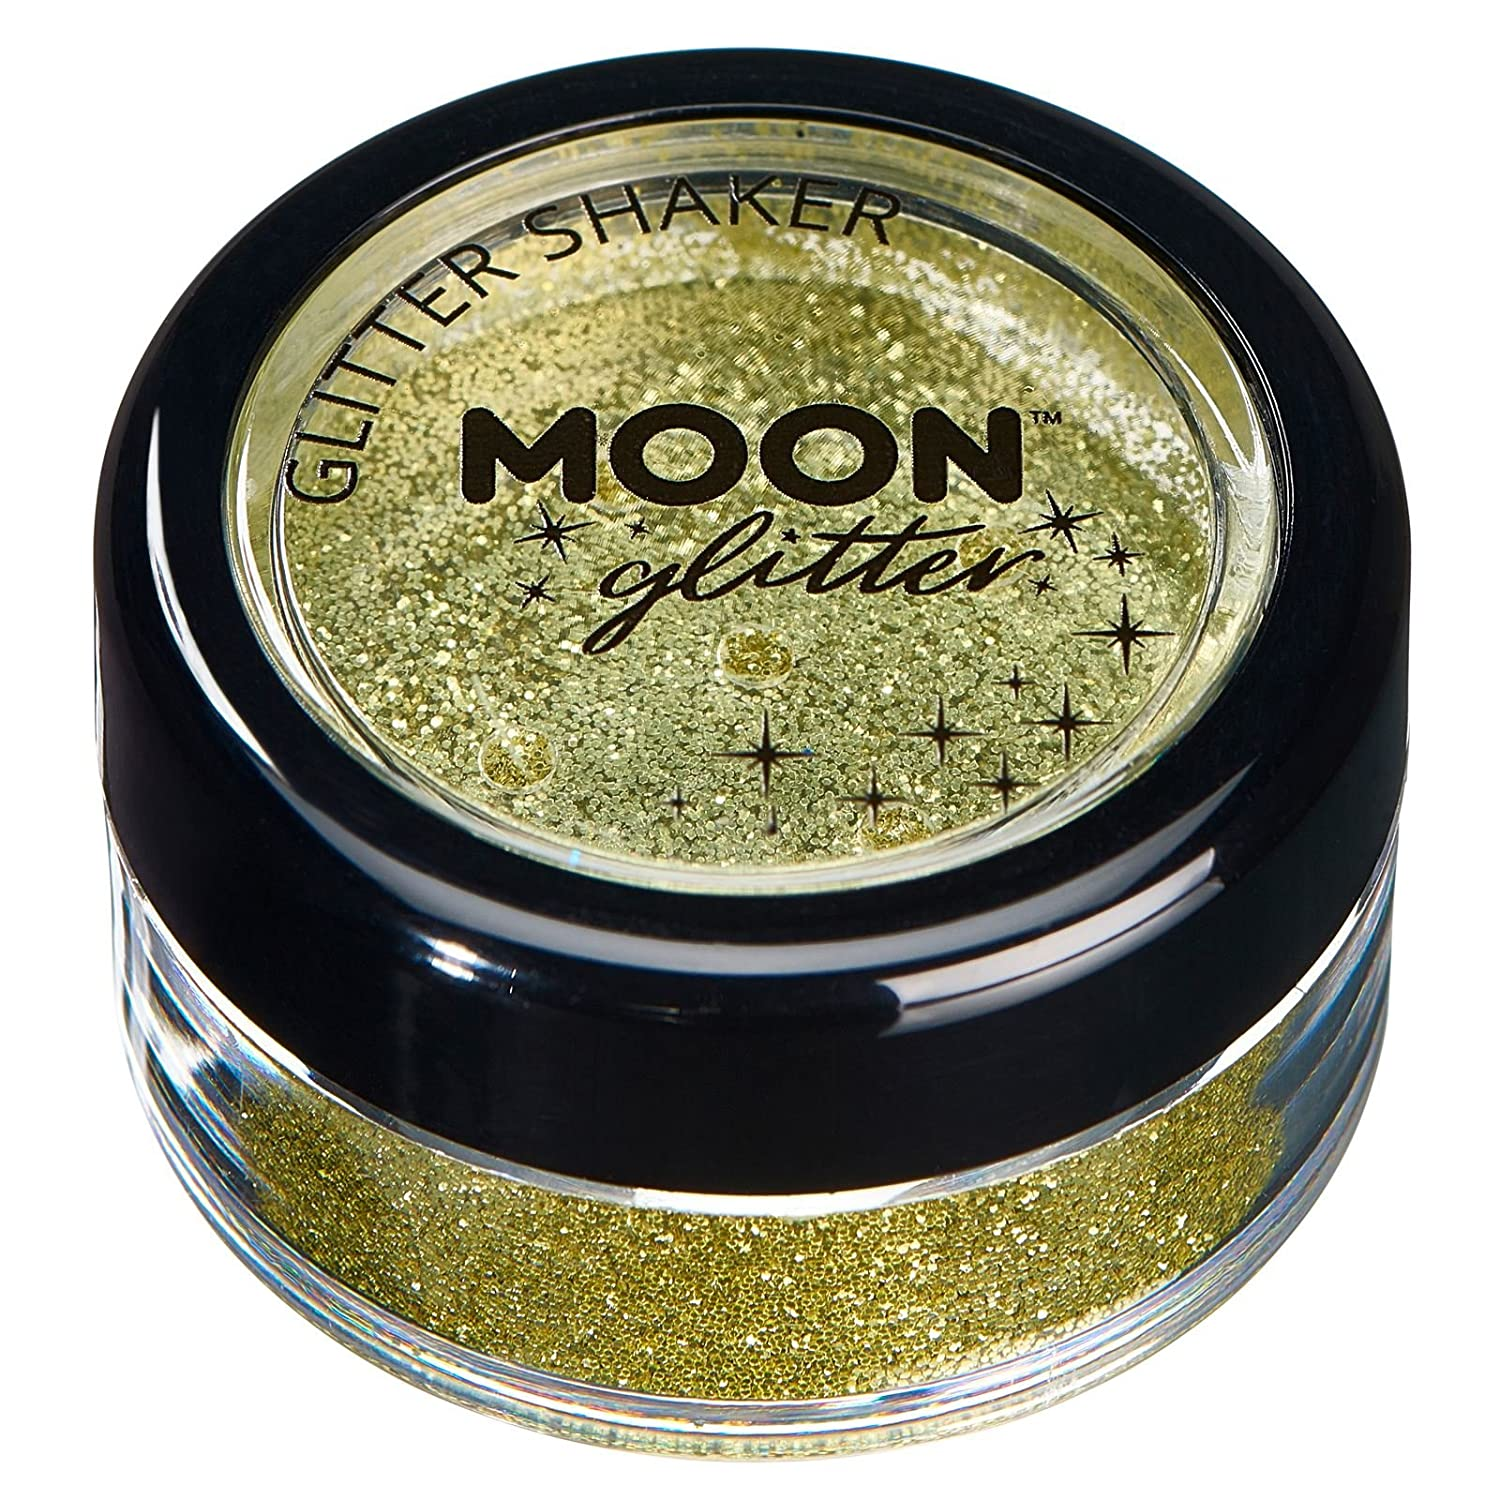 Fine Glitter Shakers by Moon Glitter – 100% Cosmetic Glitter for Face, Body, Nails, Hair and Lips - 0.17oz - Silver